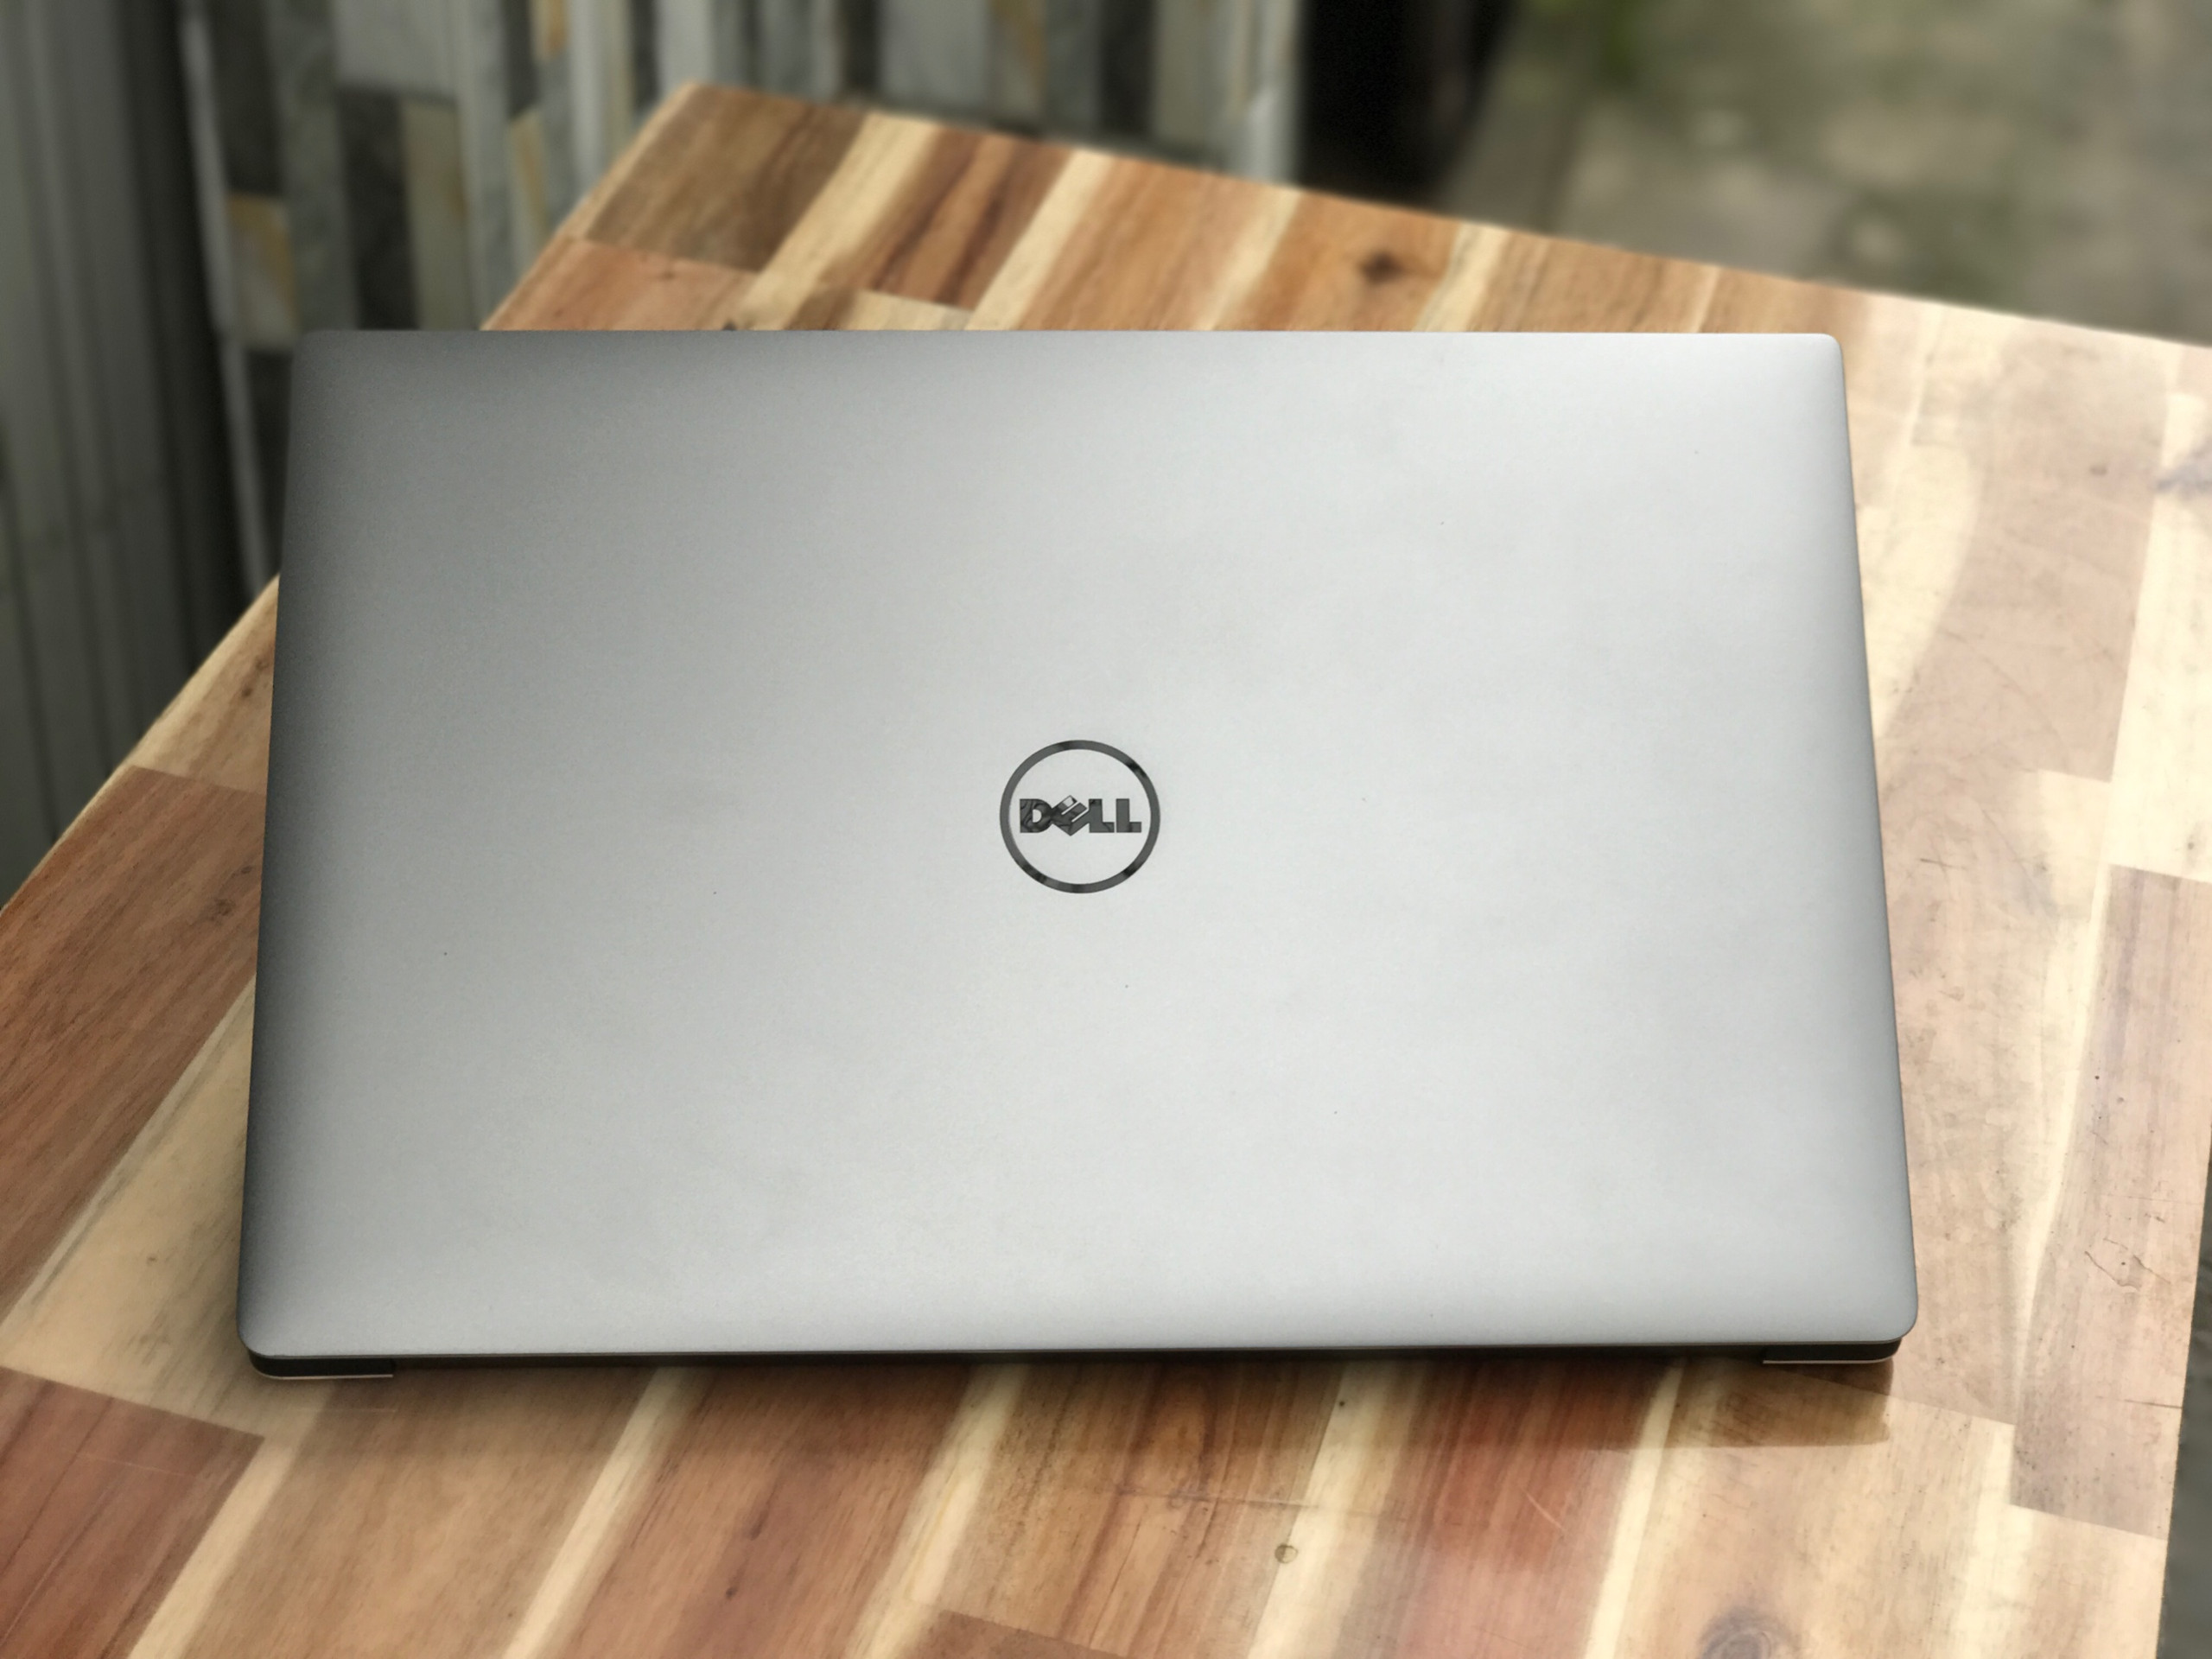 Laptop Dell XPS 15 9560, I7 7700HQ 16G SSD512 4K GTX1050 Like new zin 100% Giá rẻ1